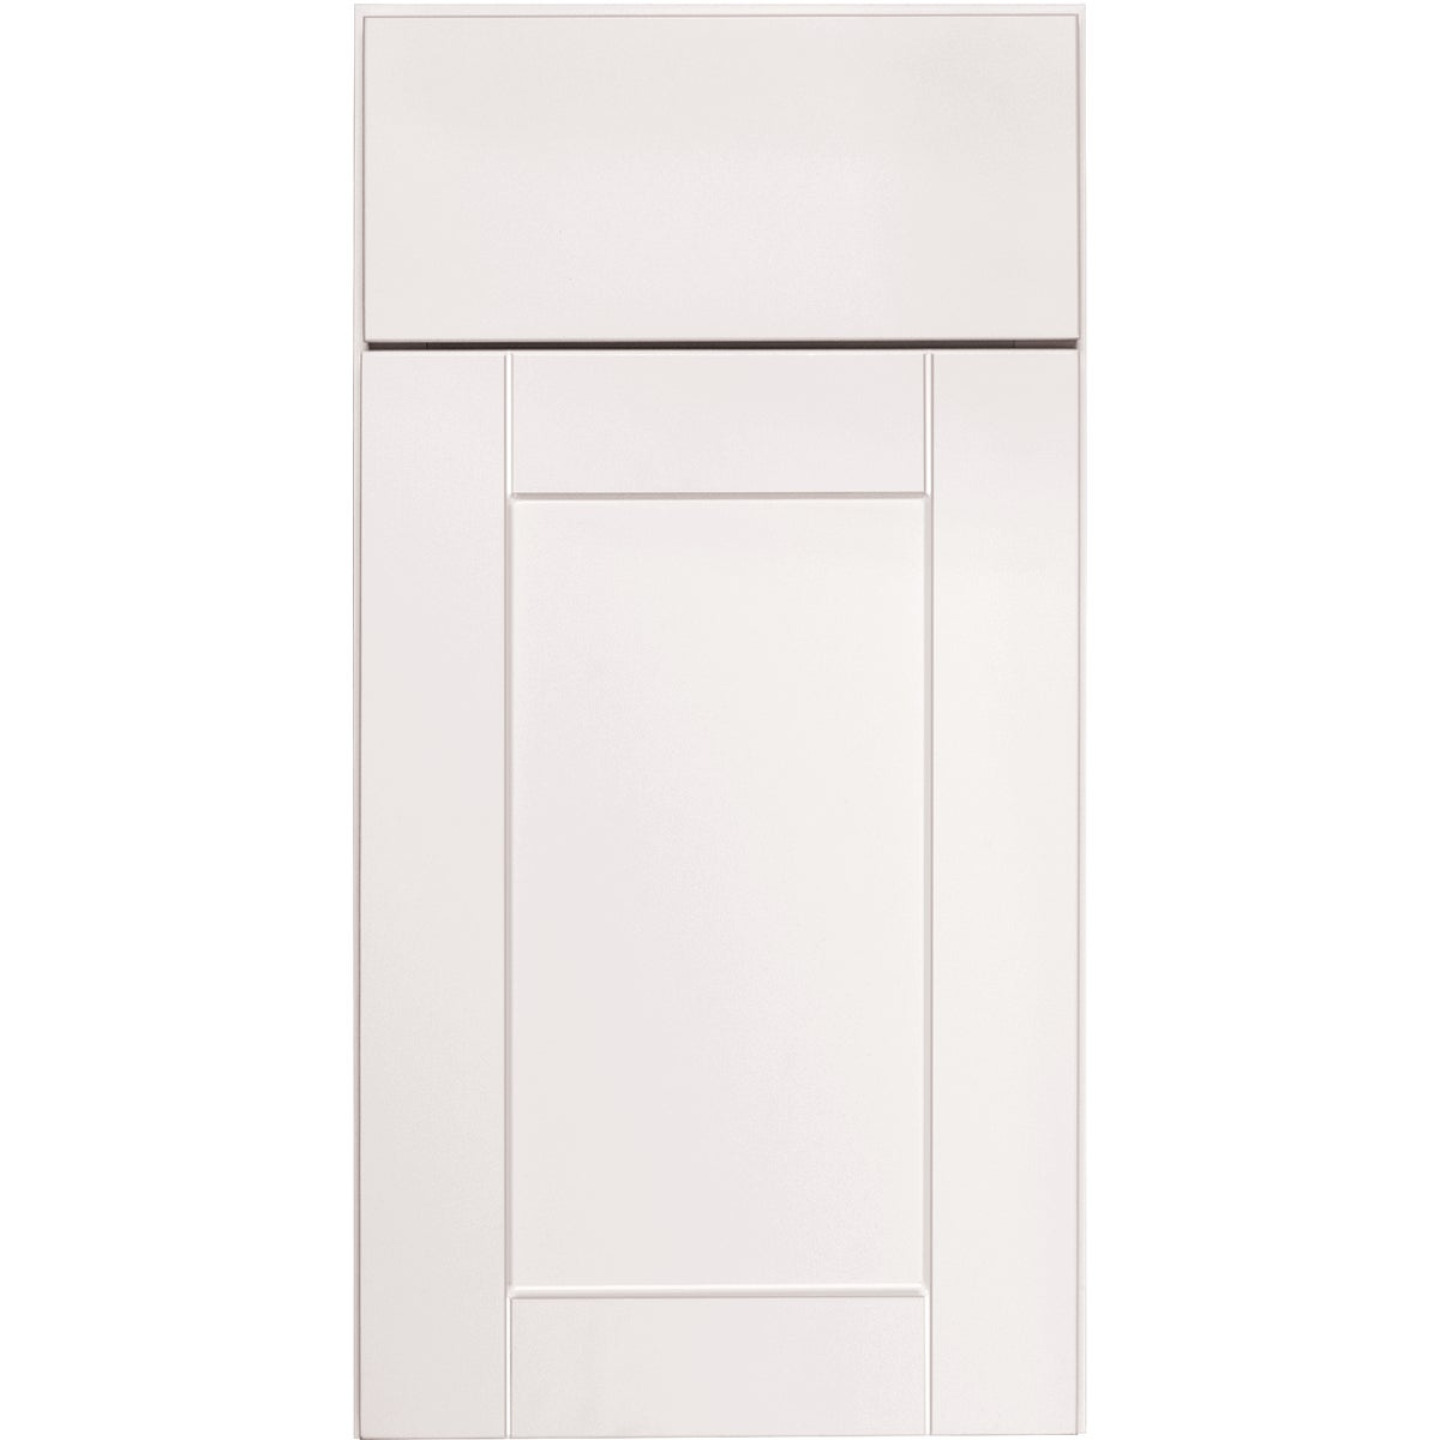 Continental Cabinets Andover Shaker 12 In. W x 30 In. H x 12 In. D White Thermofoil Wall Kitchen Cabinet Image 3